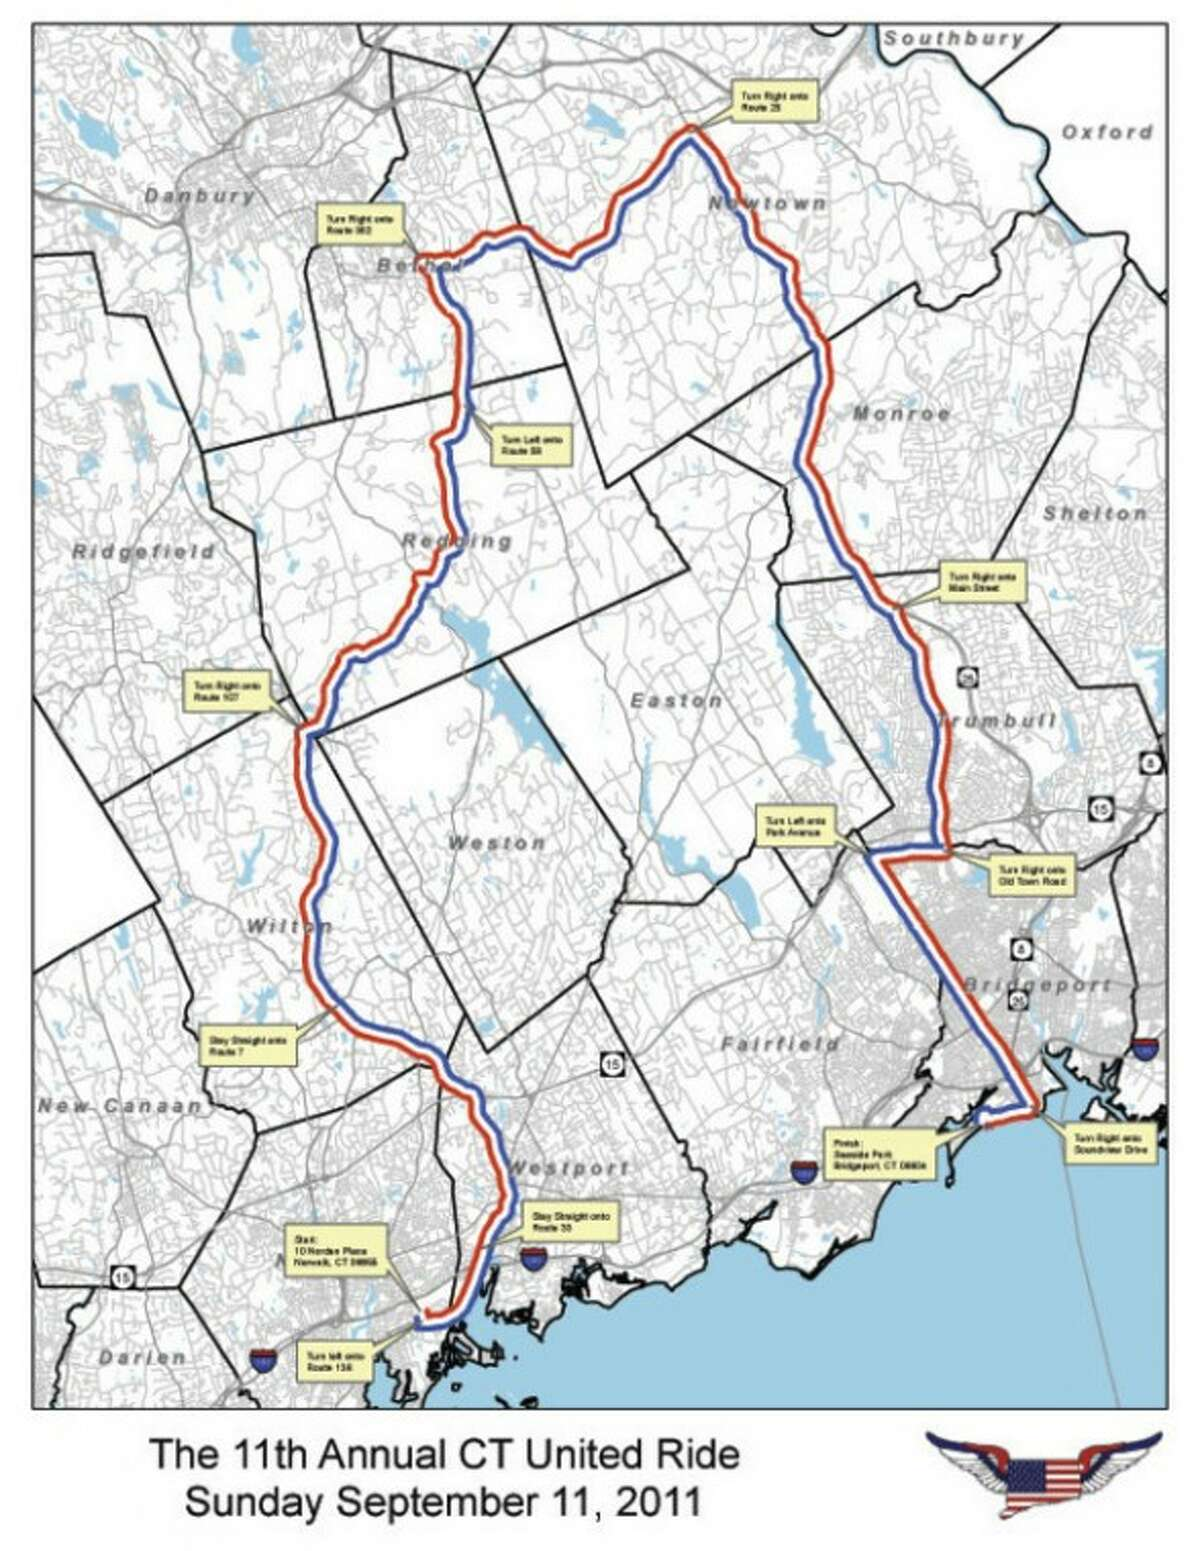 CT United Ride expected to draw nearly 4,000 riders Sunday